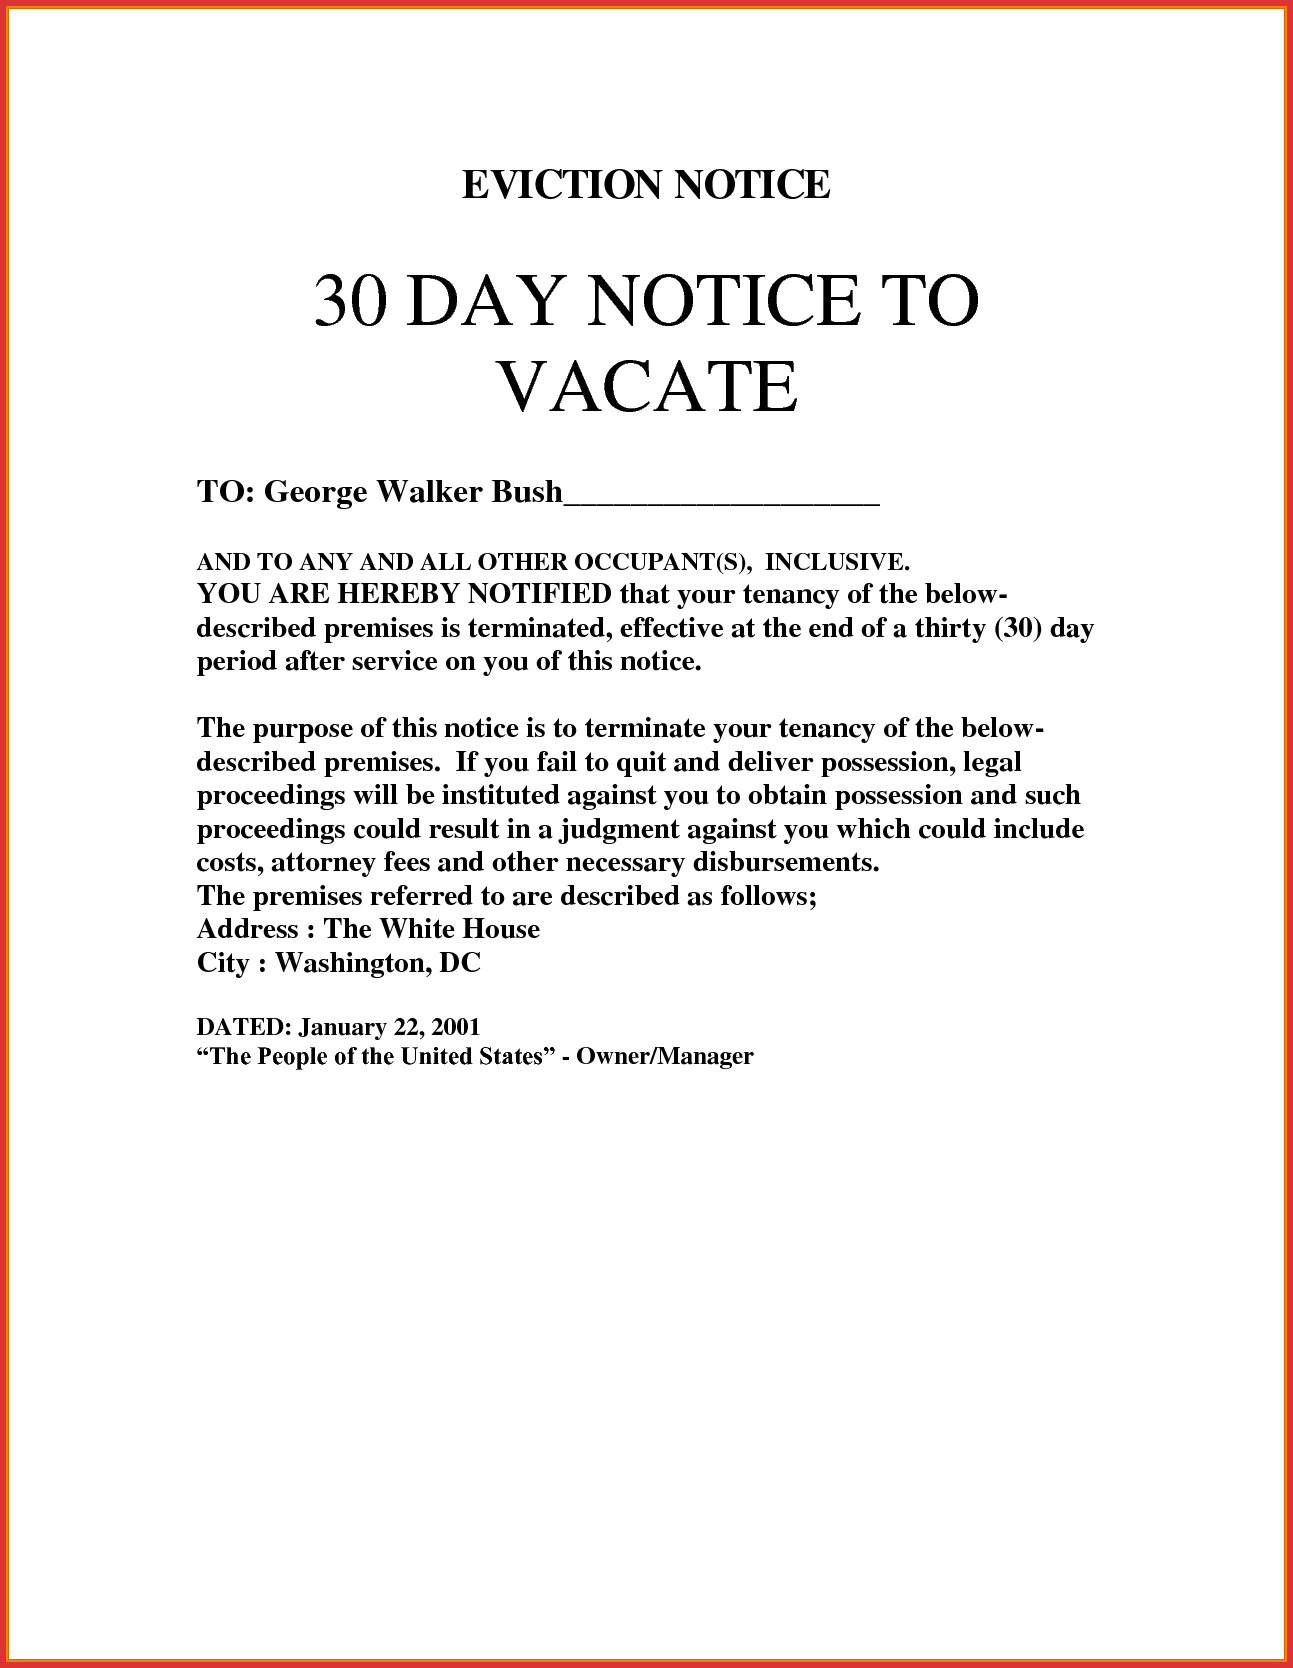 Eviction Warning Letter Template - Resignation Letter Days Notice Day to Vacate Sample Best Eviction